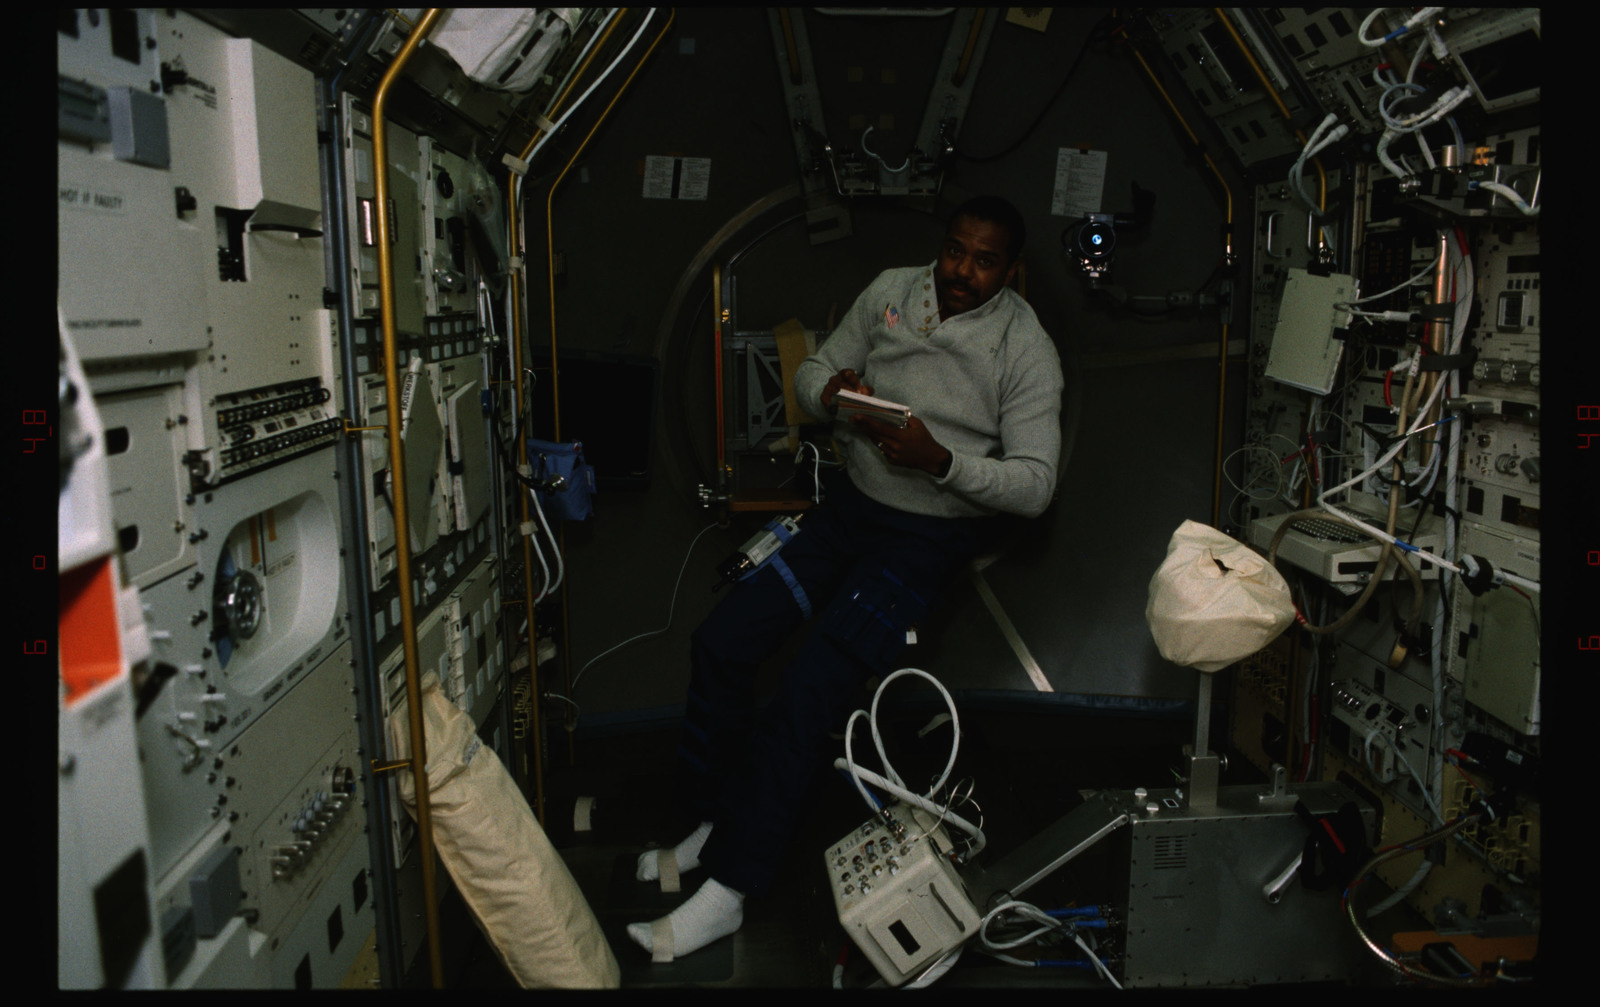 STS055-229-016 - STS-055 - Views of crewmembers in the D-2 Spacelab.